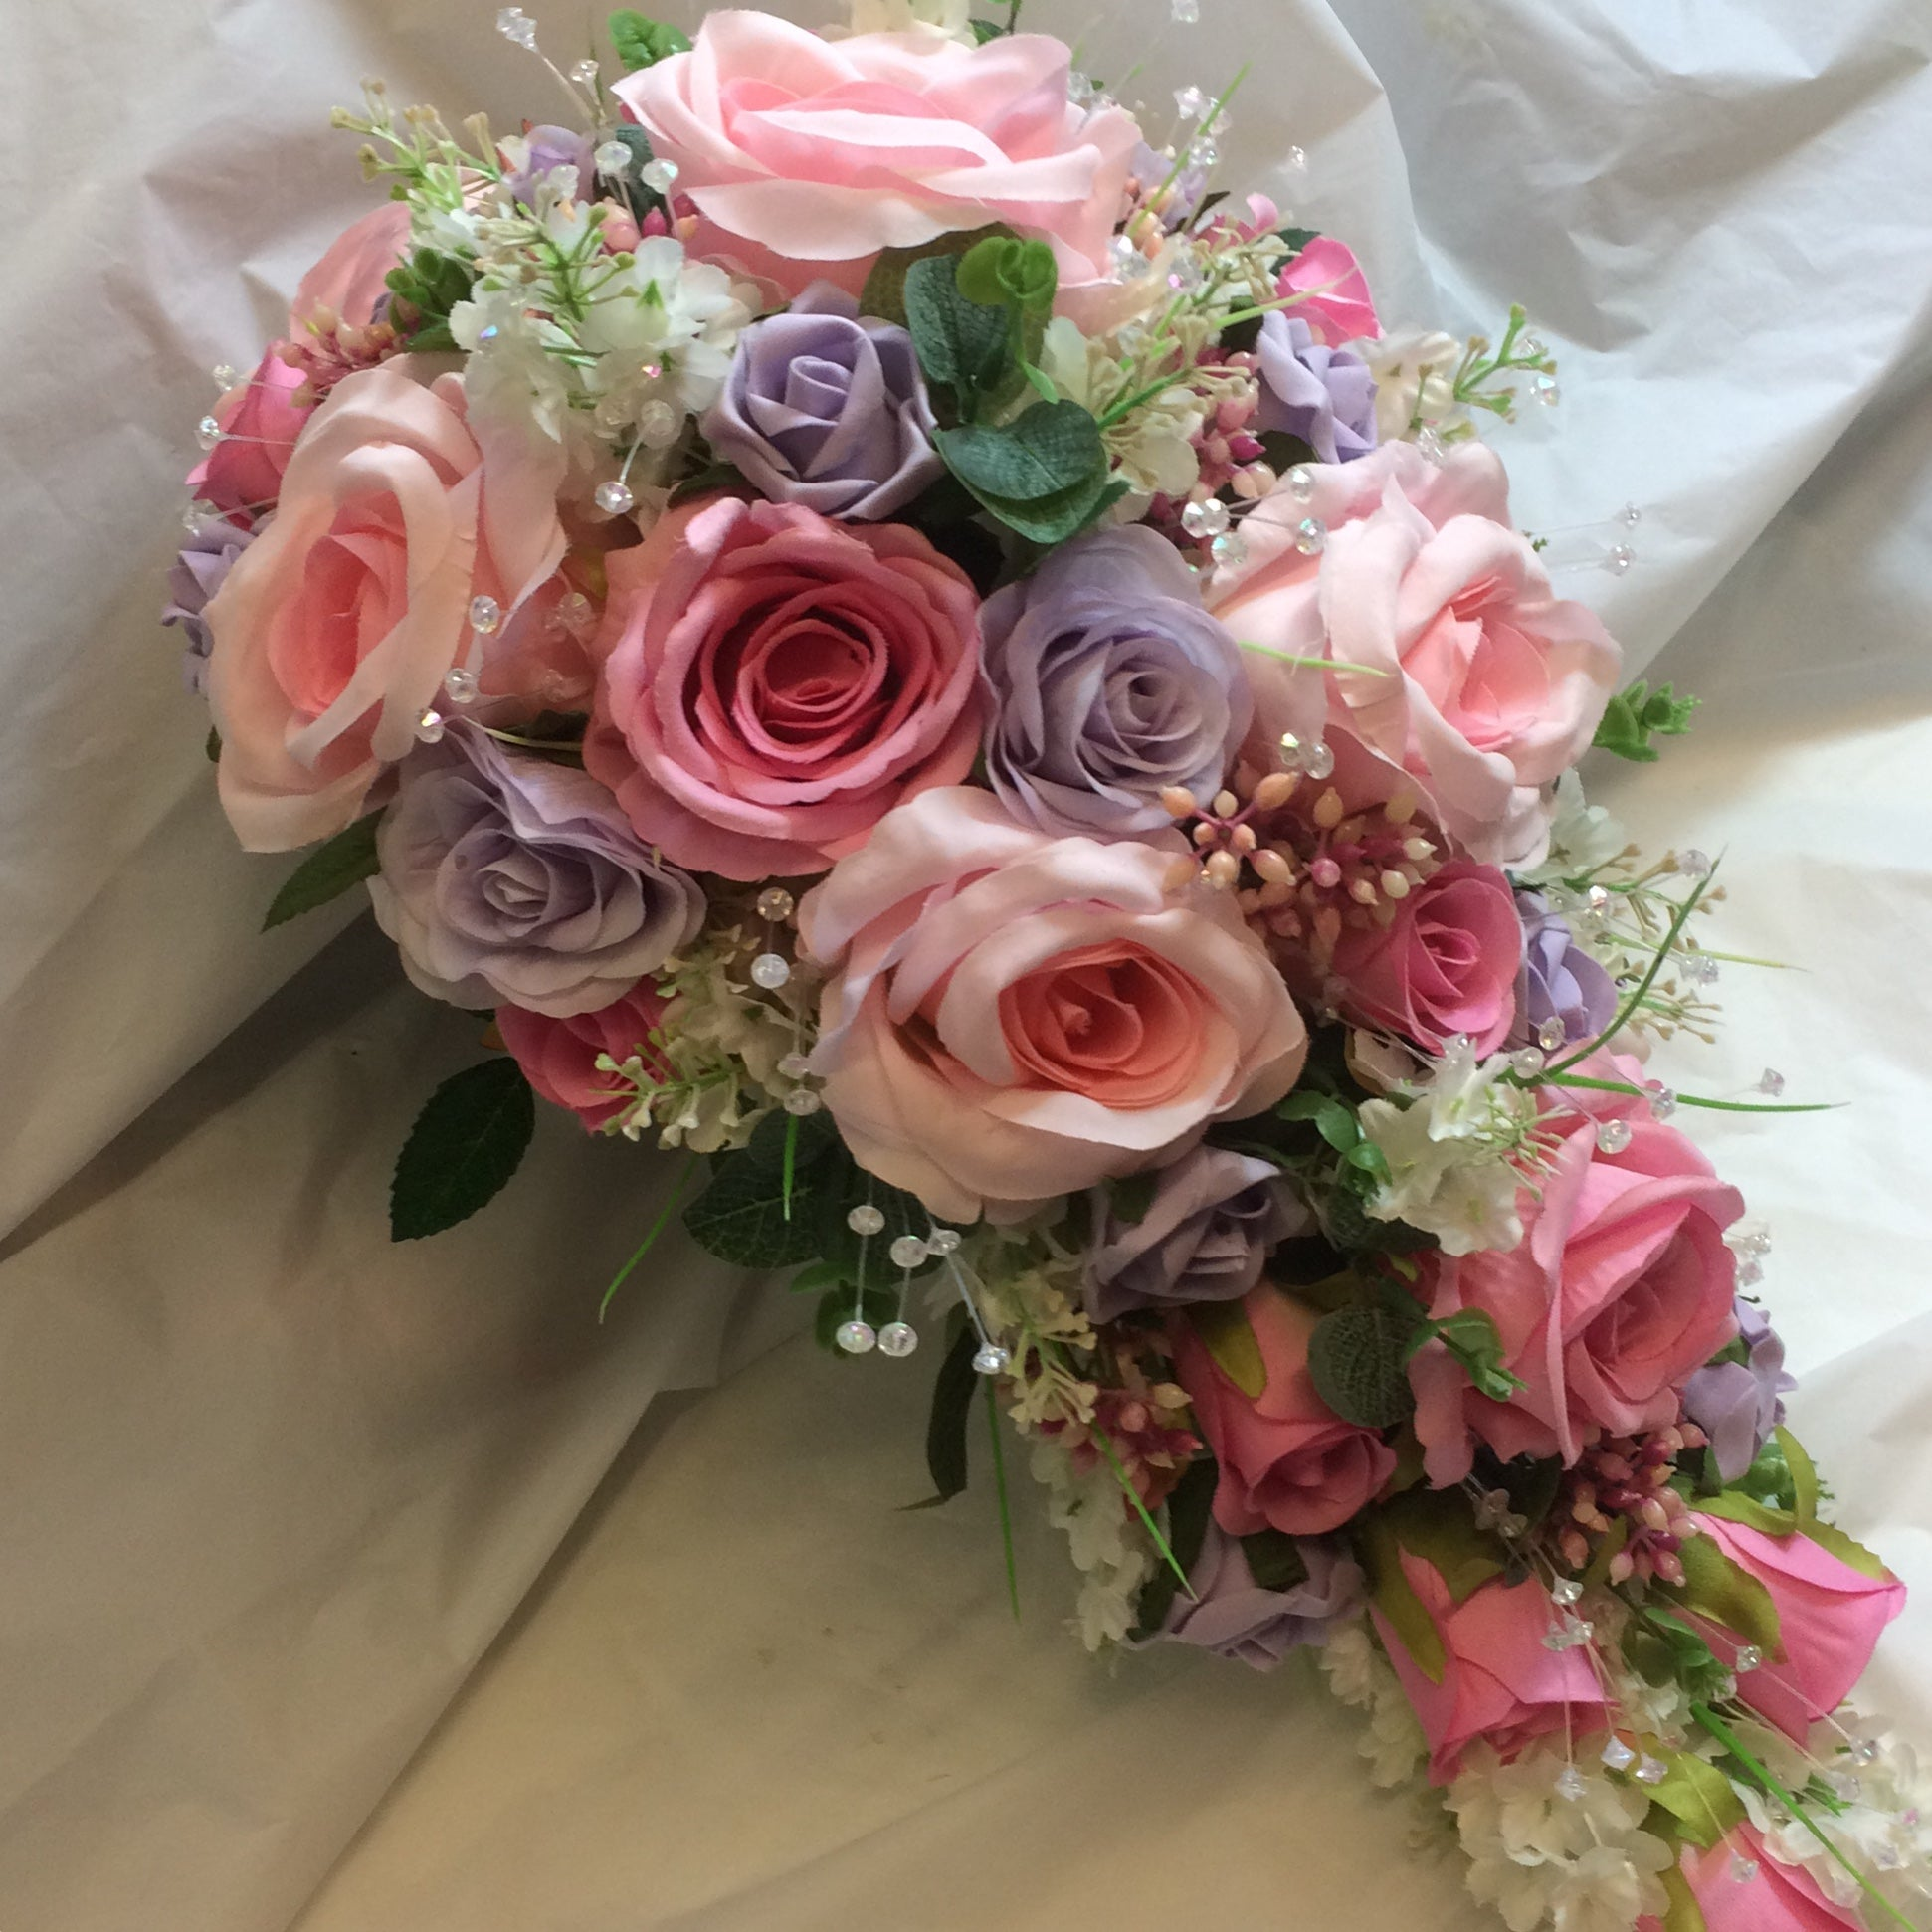 A Teardrop Bouquet Of Silk Pink And Lilac Roses Crystals Abigailrose